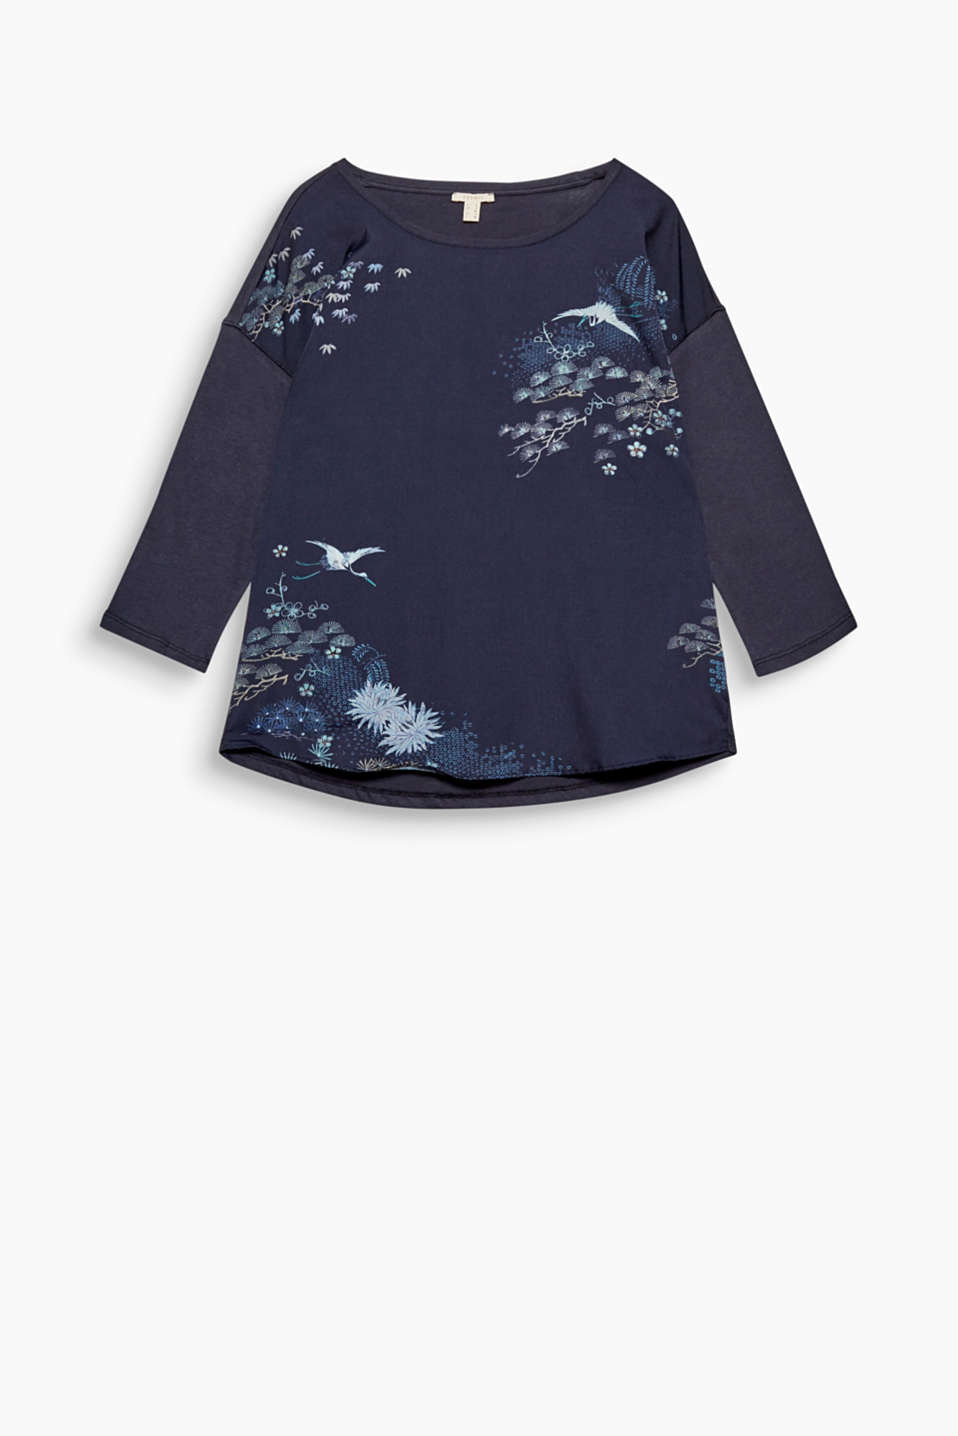 Feed your wanderlust and enjoy the way this floaty blouse with a decorative oriental print feels against your skin!